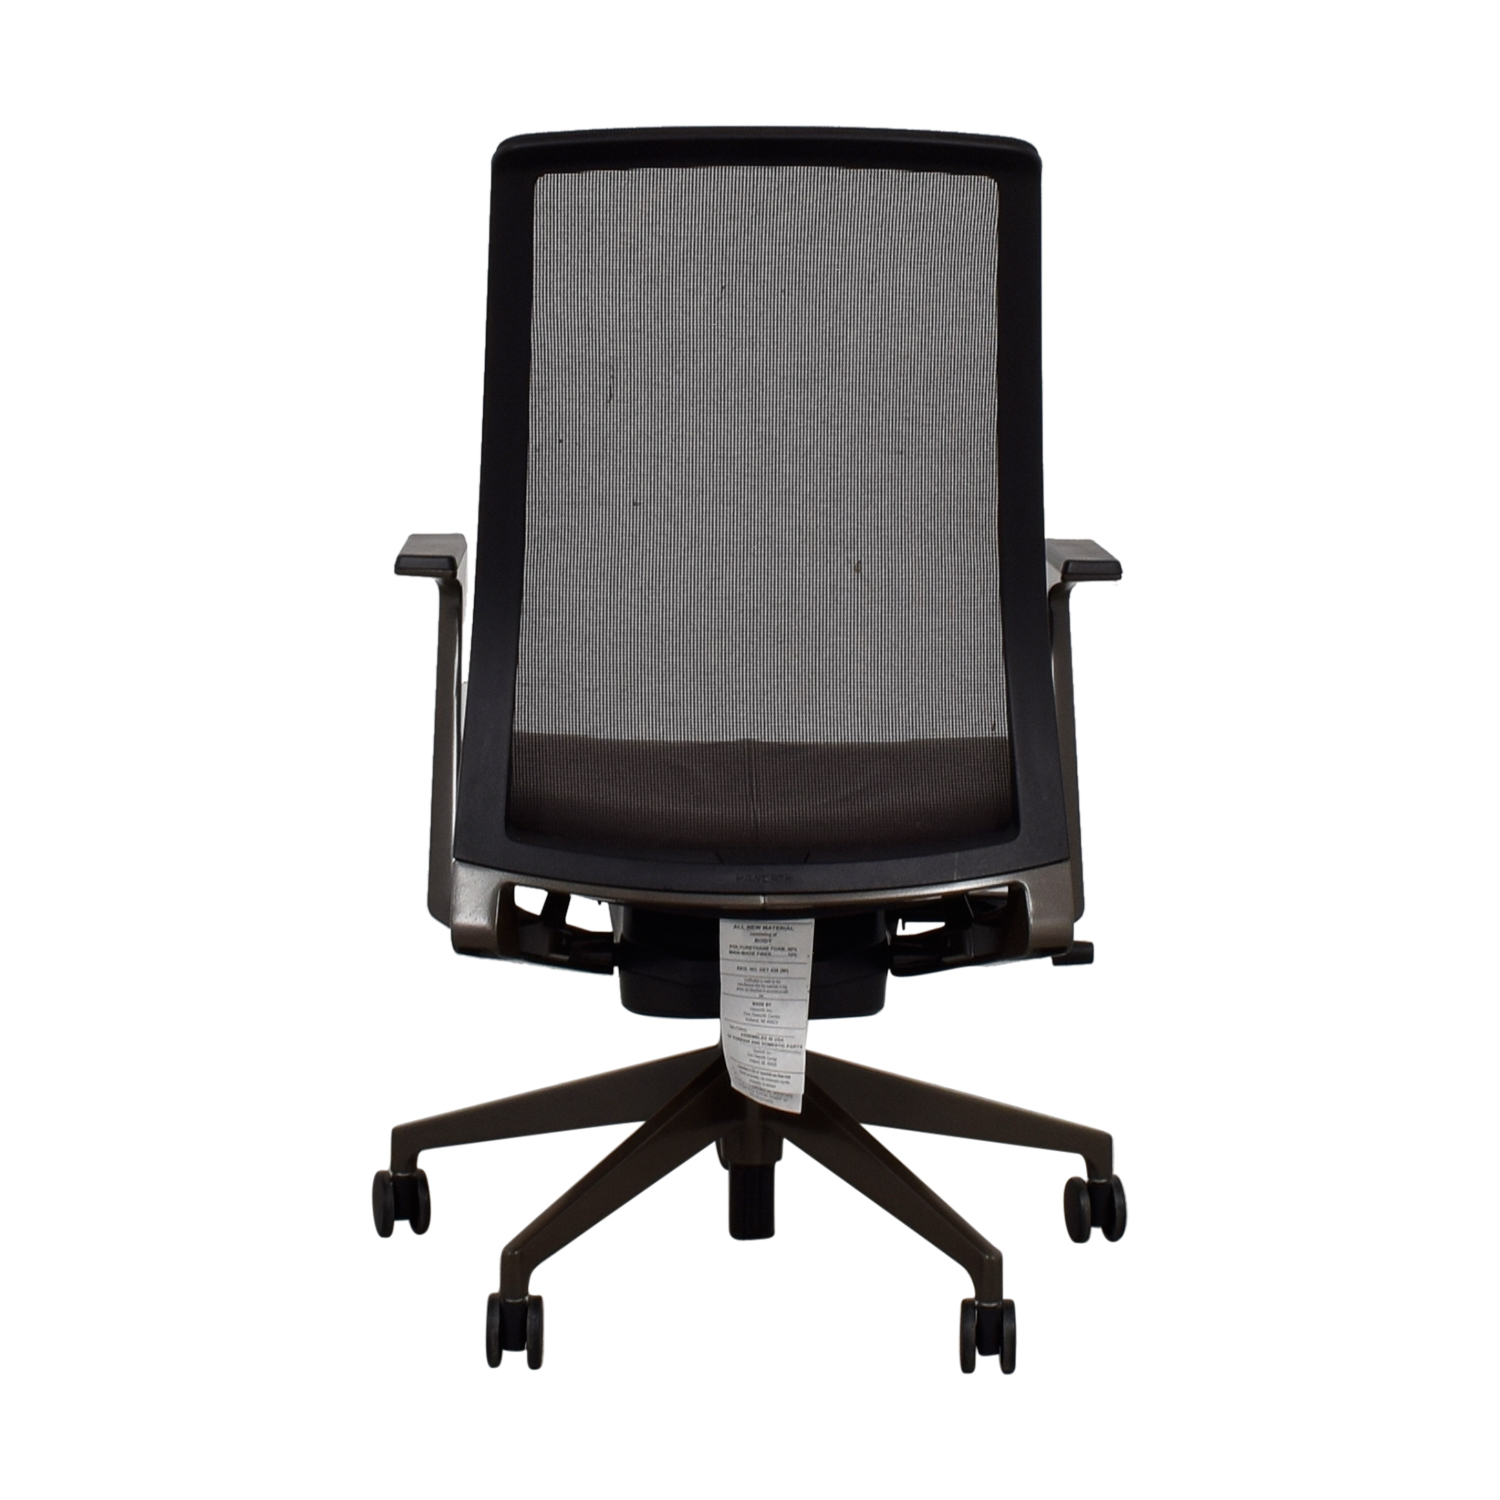 Crate & Barrel Crate & Barrel Haworth Brown Very Task Office Chair dimensions